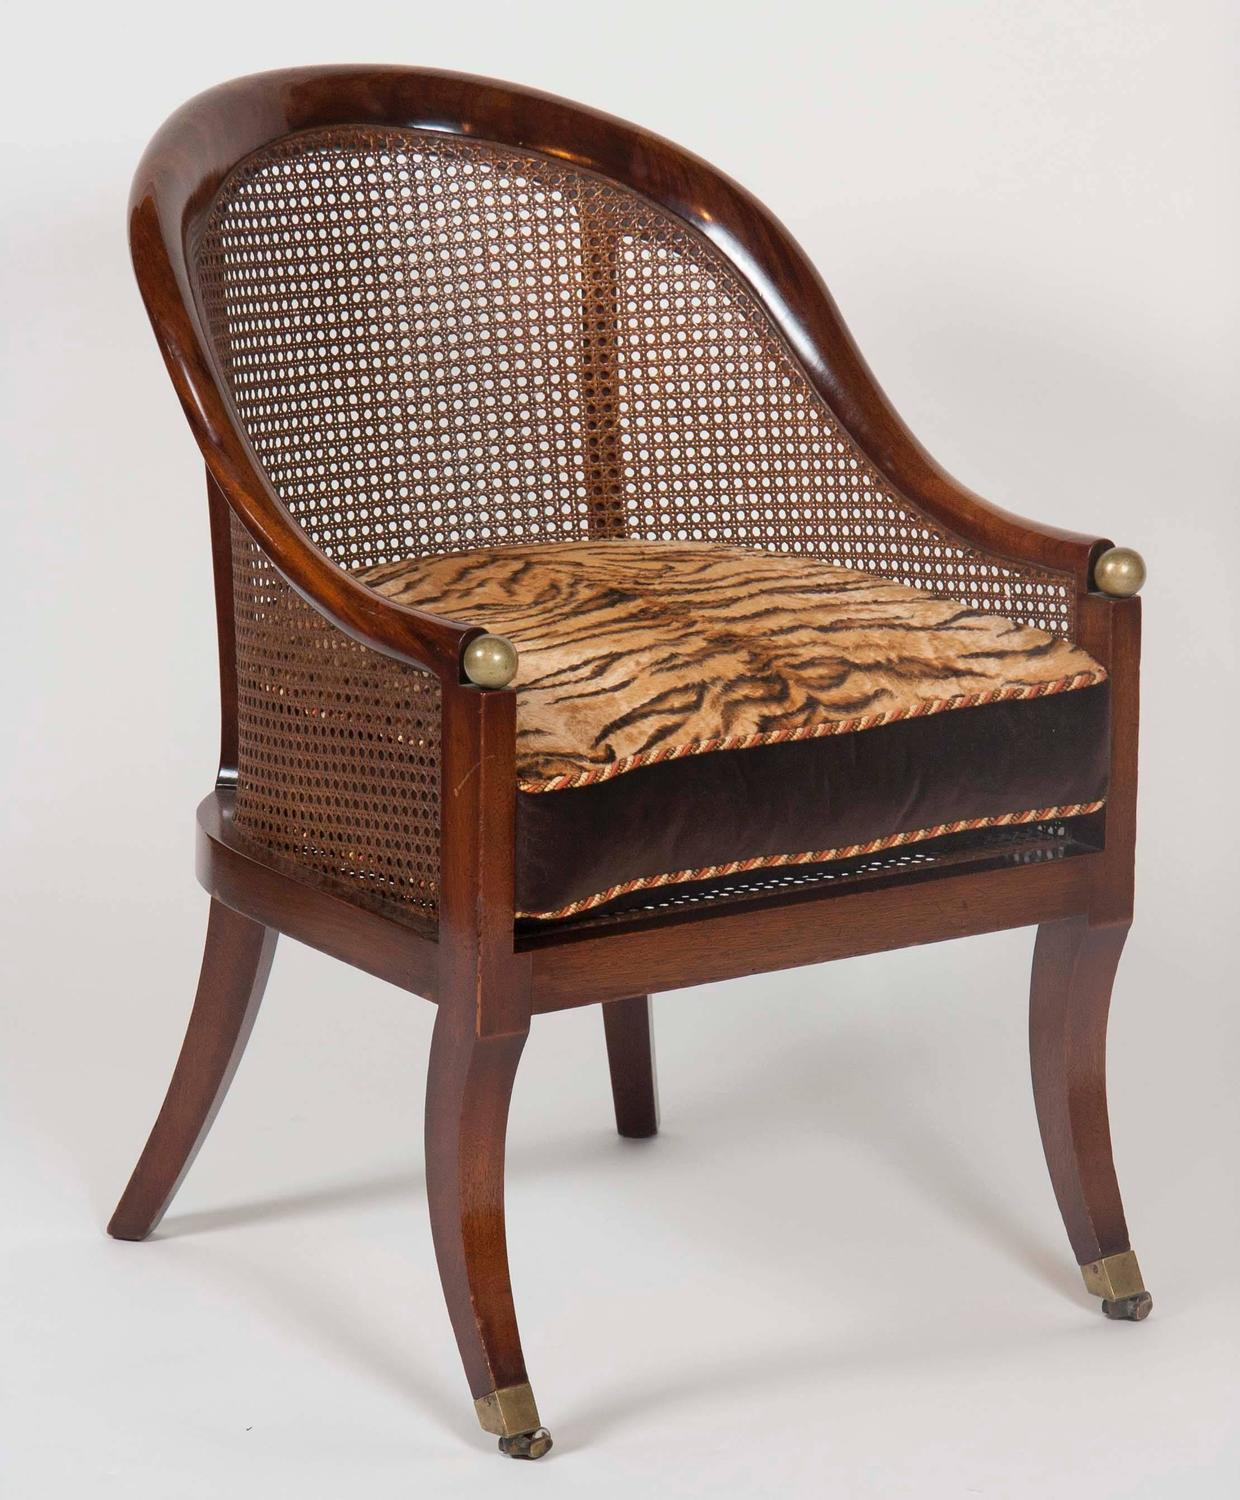 Pair Of Regency Style Mahogany Tub Chairs For Sale At 1stdibs